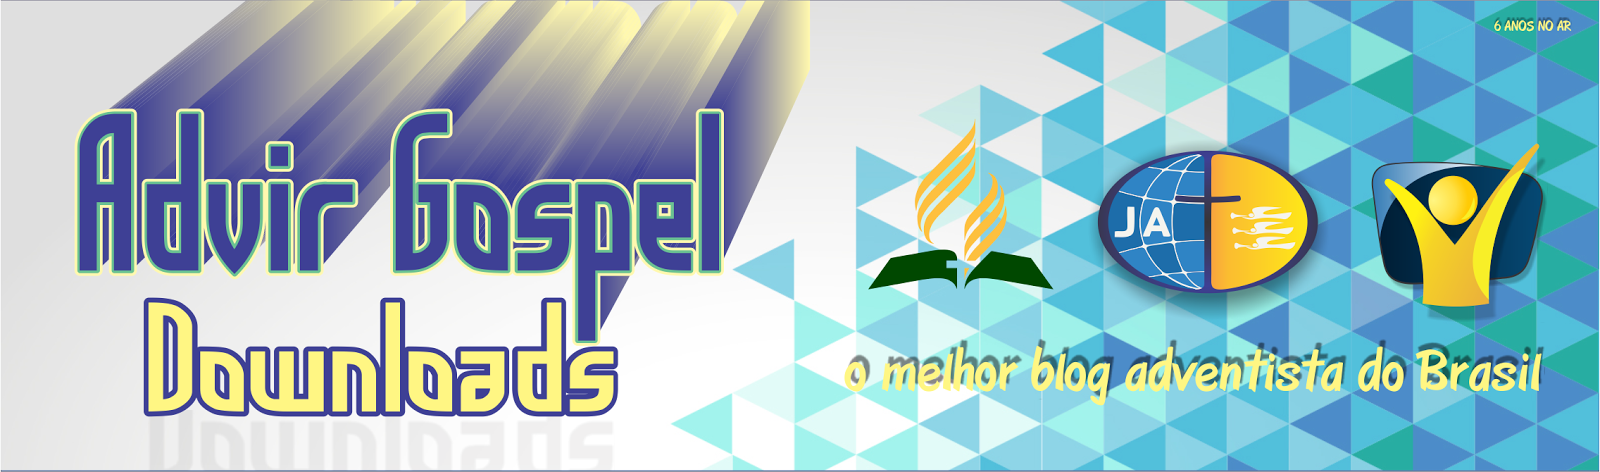 Advir Gospel Downloads